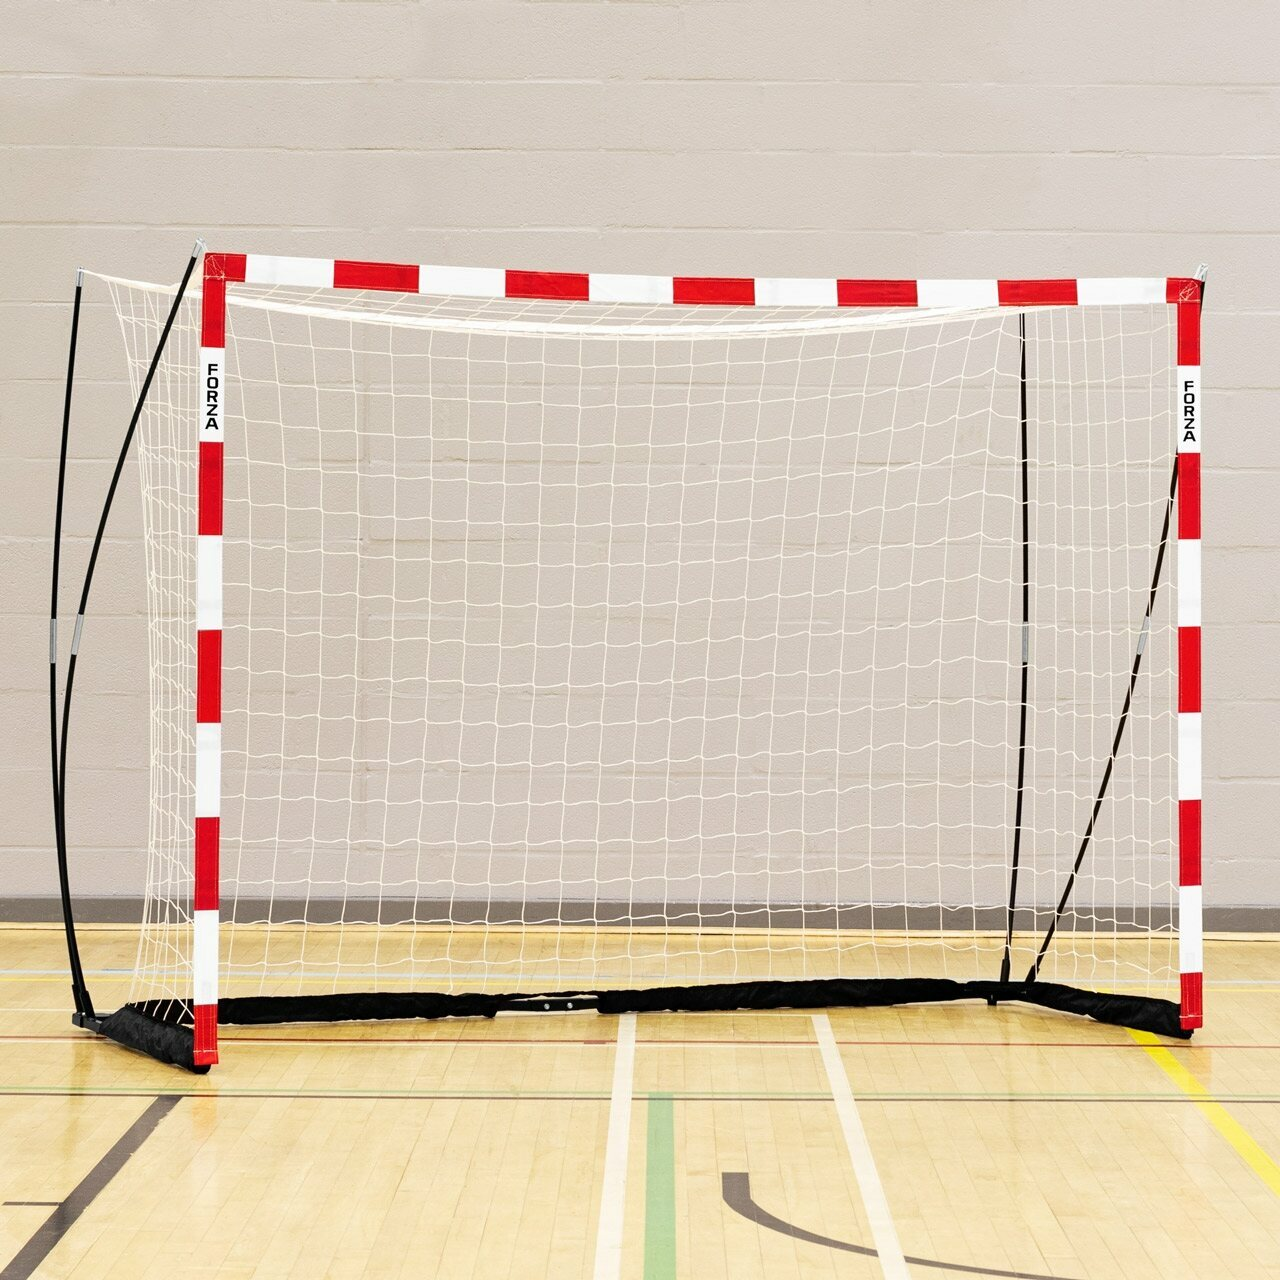 FORZA ProFlex Handball Goal [Red] - Goal Only